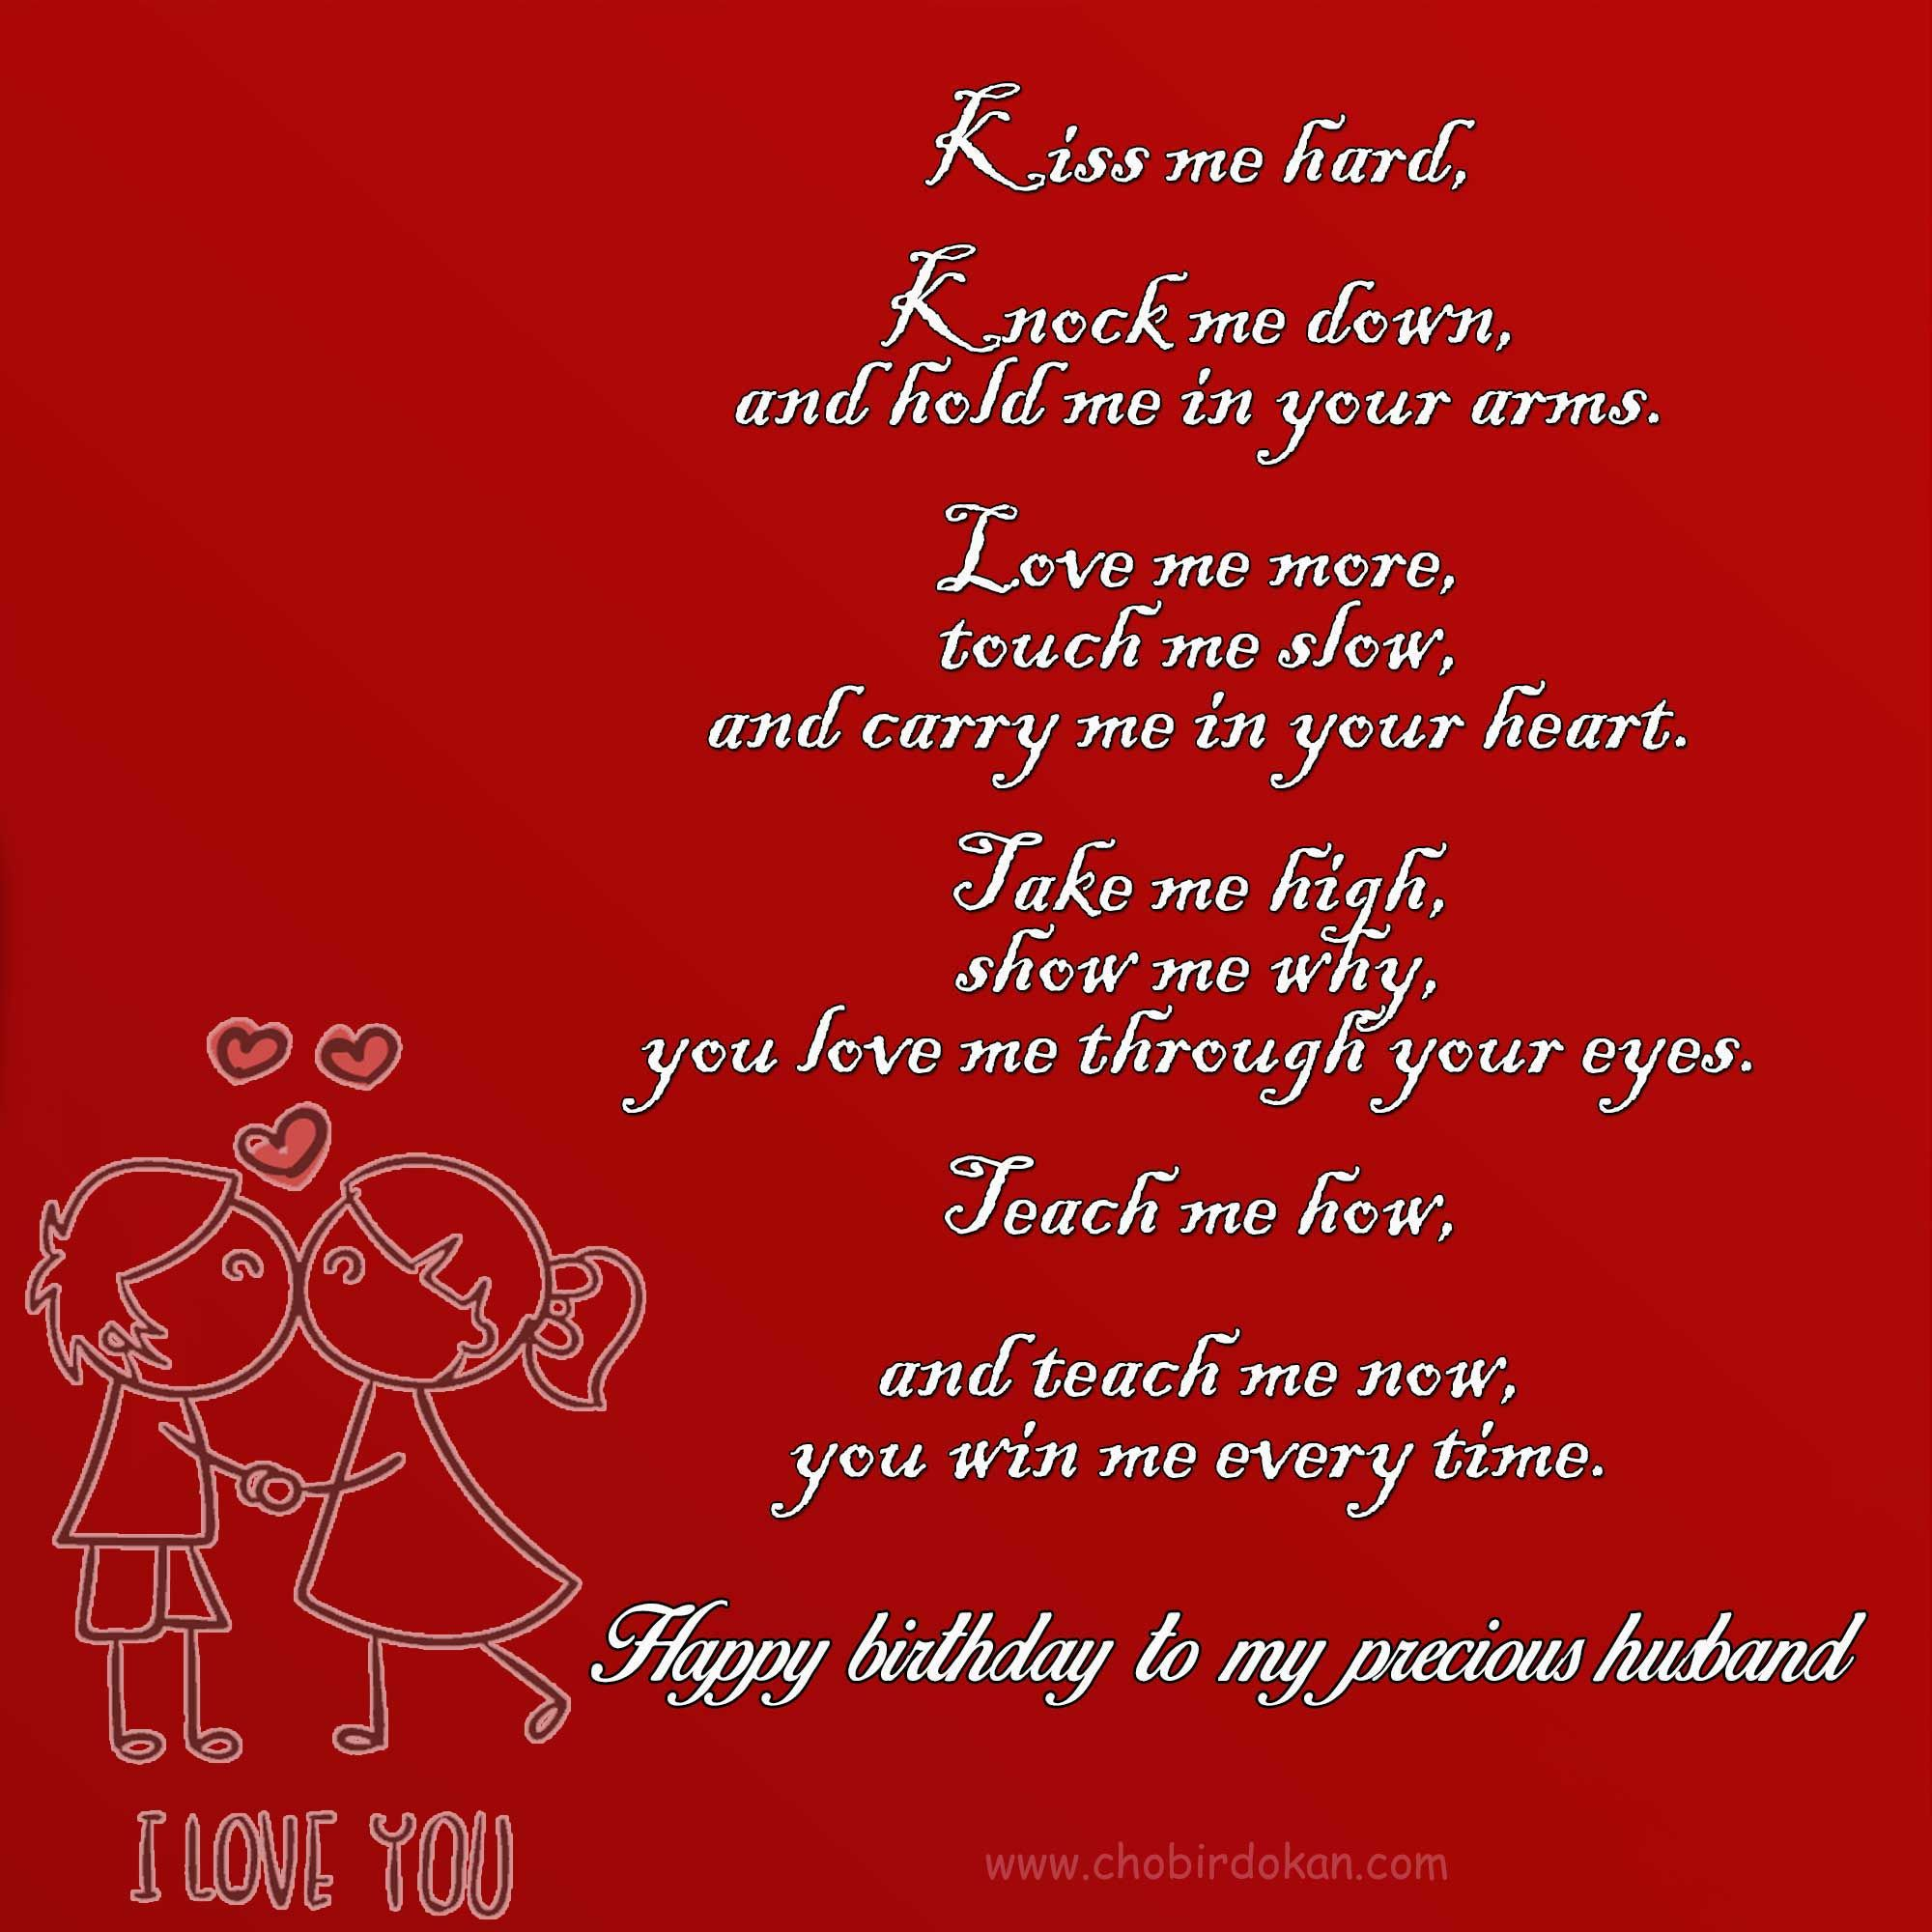 happy birthday poems for him Birthday Poems For Her and